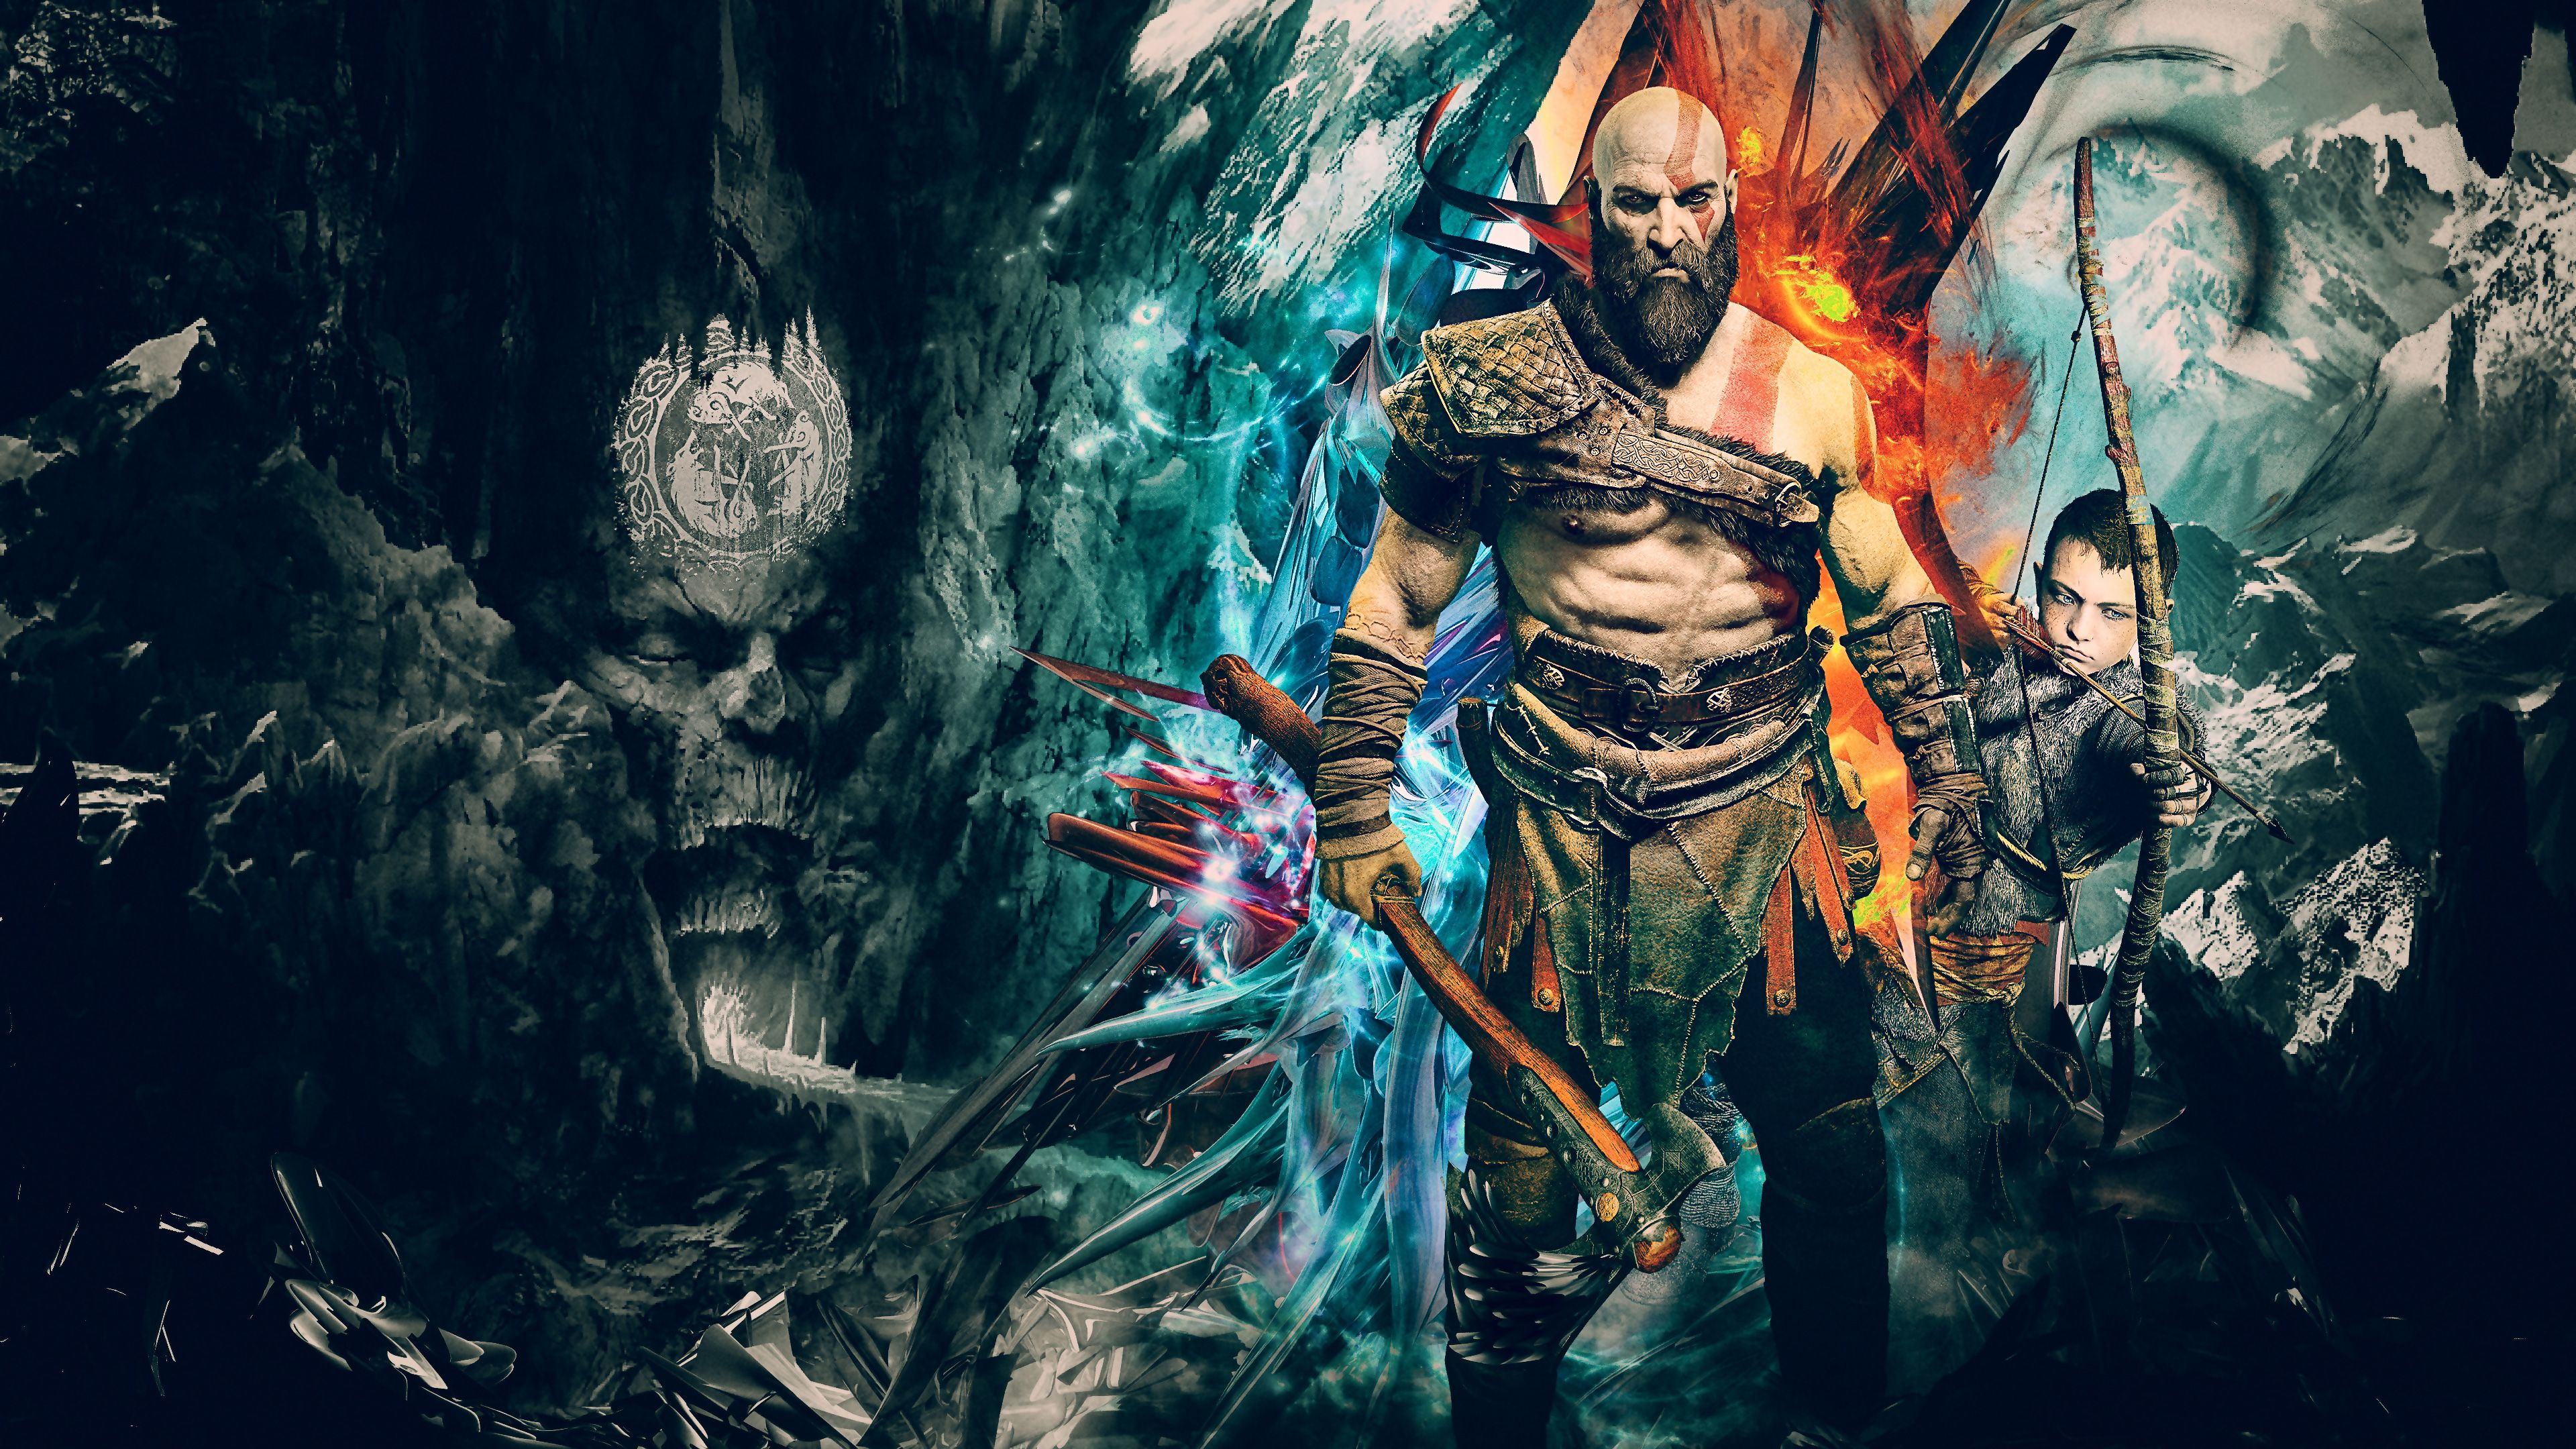 Kratos God Of War 4k Artwork Ps Games Wallpapers Kratos Wallpapers Hd Wallpapers God Of War Wallpapers God Kratos God Of War 3840x2160 Wallpaper God Of War